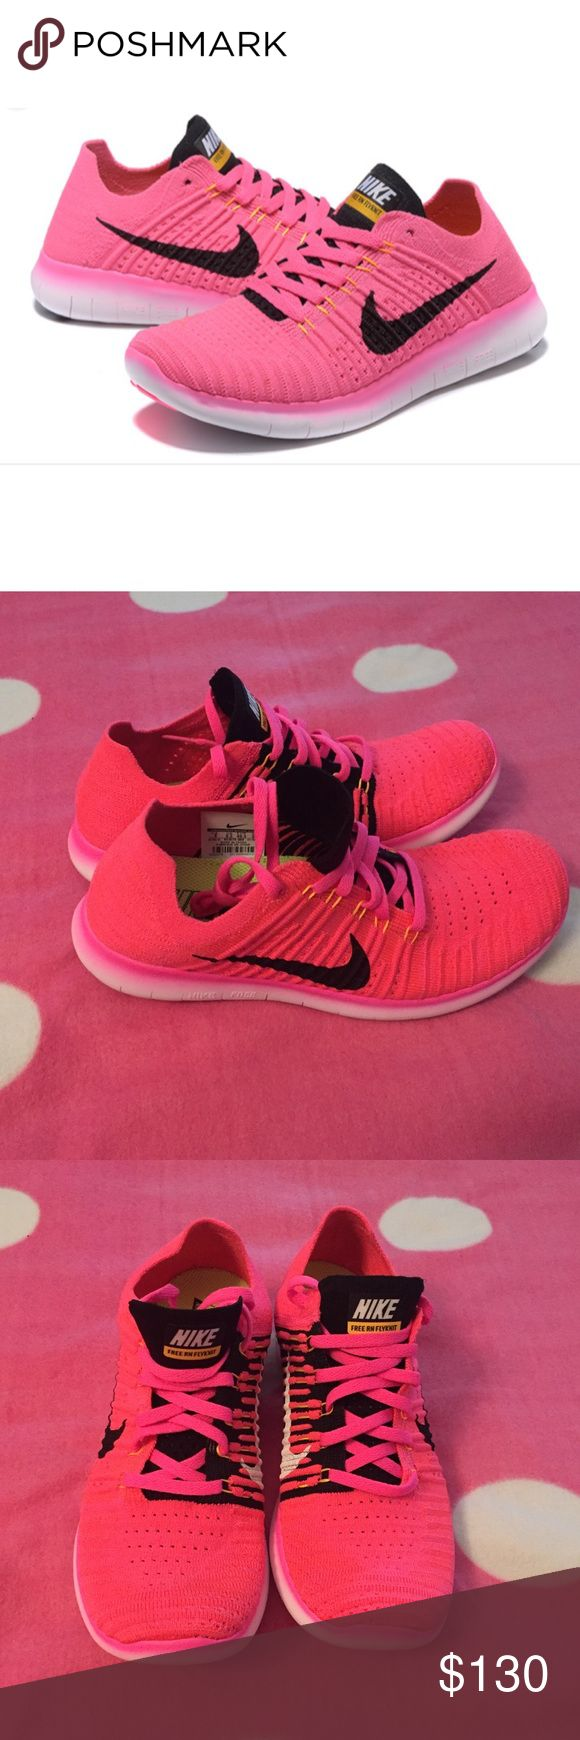 Nike free rn flyknit ⬇️PLEASE READ!!!⬇️ Lowballers will be blocked and ignored!  NO TRADES❌❌PLEASE DON'T ASK! I'm not interested in trading AT ALL!  No Holds❌   Please submit all offers through the offer button!  ☑️  Brand new. Size 9 (Women's) comes with original box missing a lid.  I inspect all my items before I ship them out so please be sure to read descriptions before purchasing to prevent any miscommunication. Please ask any questions that's not already in the description Nike Shoes…